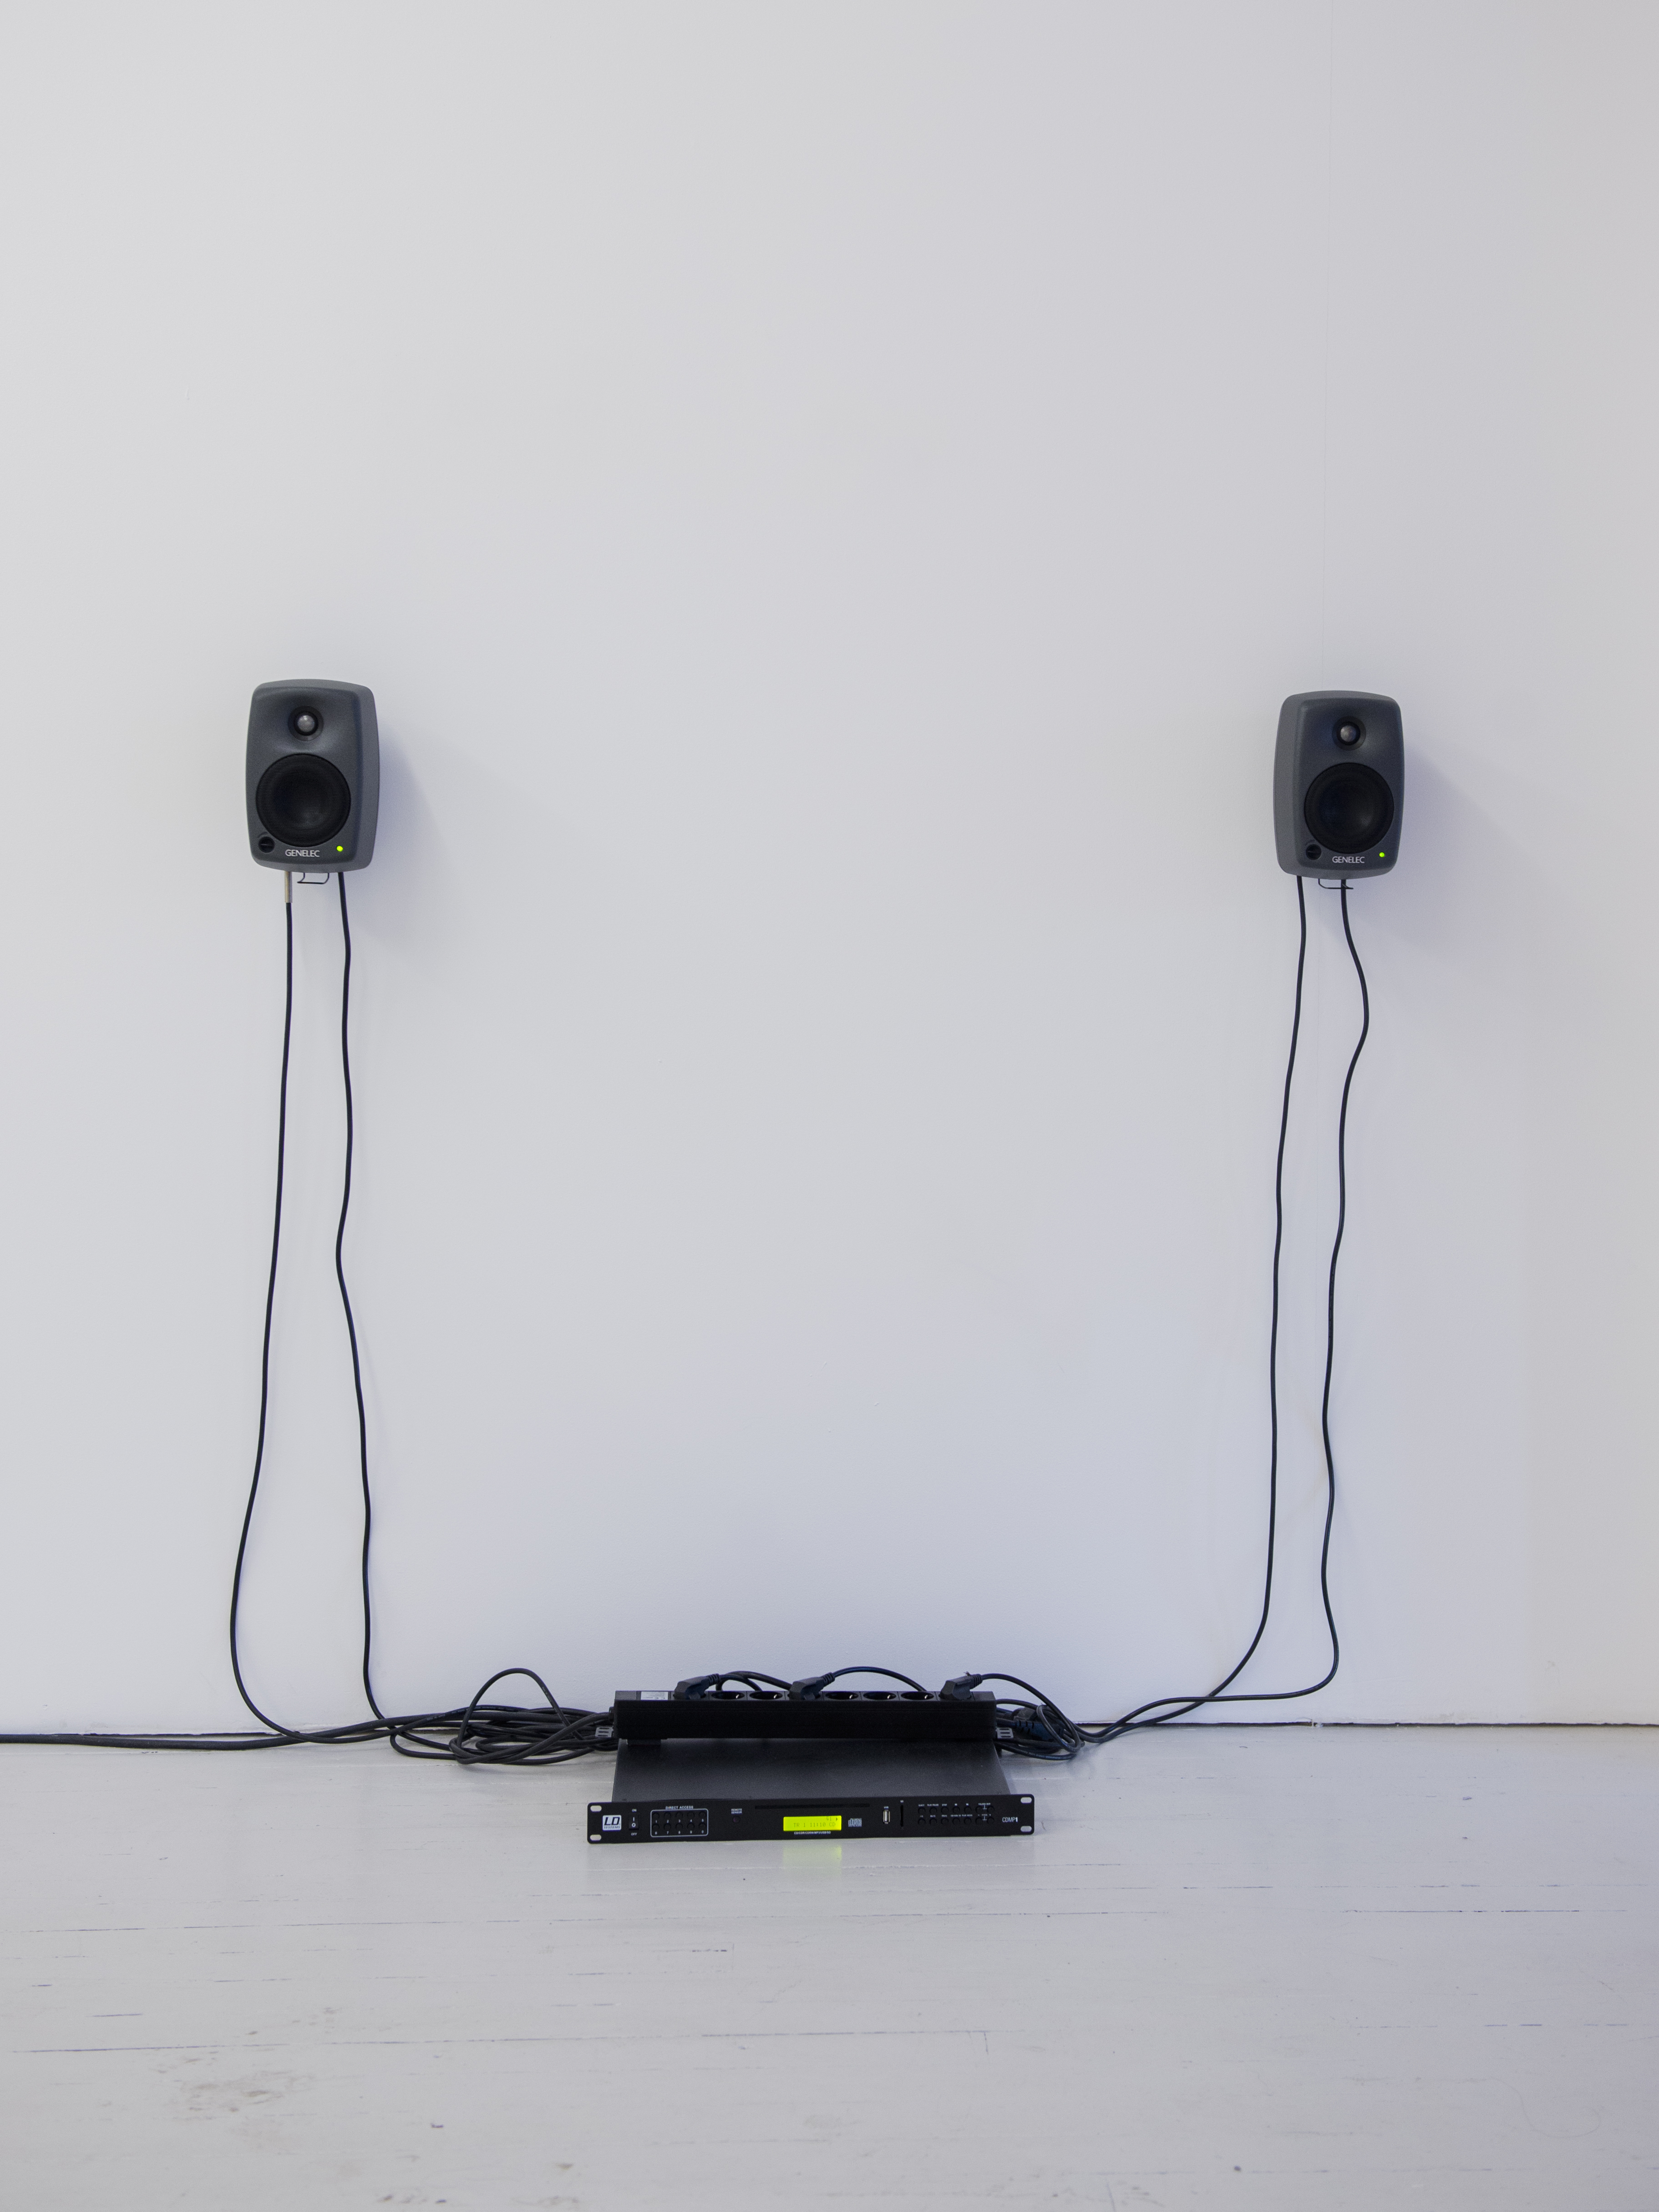 Untitled (2016), recording environments (thunderstorm), background noise and voices,sound 18' loop,stereo diffusion, rack CD player, cables, ph Ayat Gali